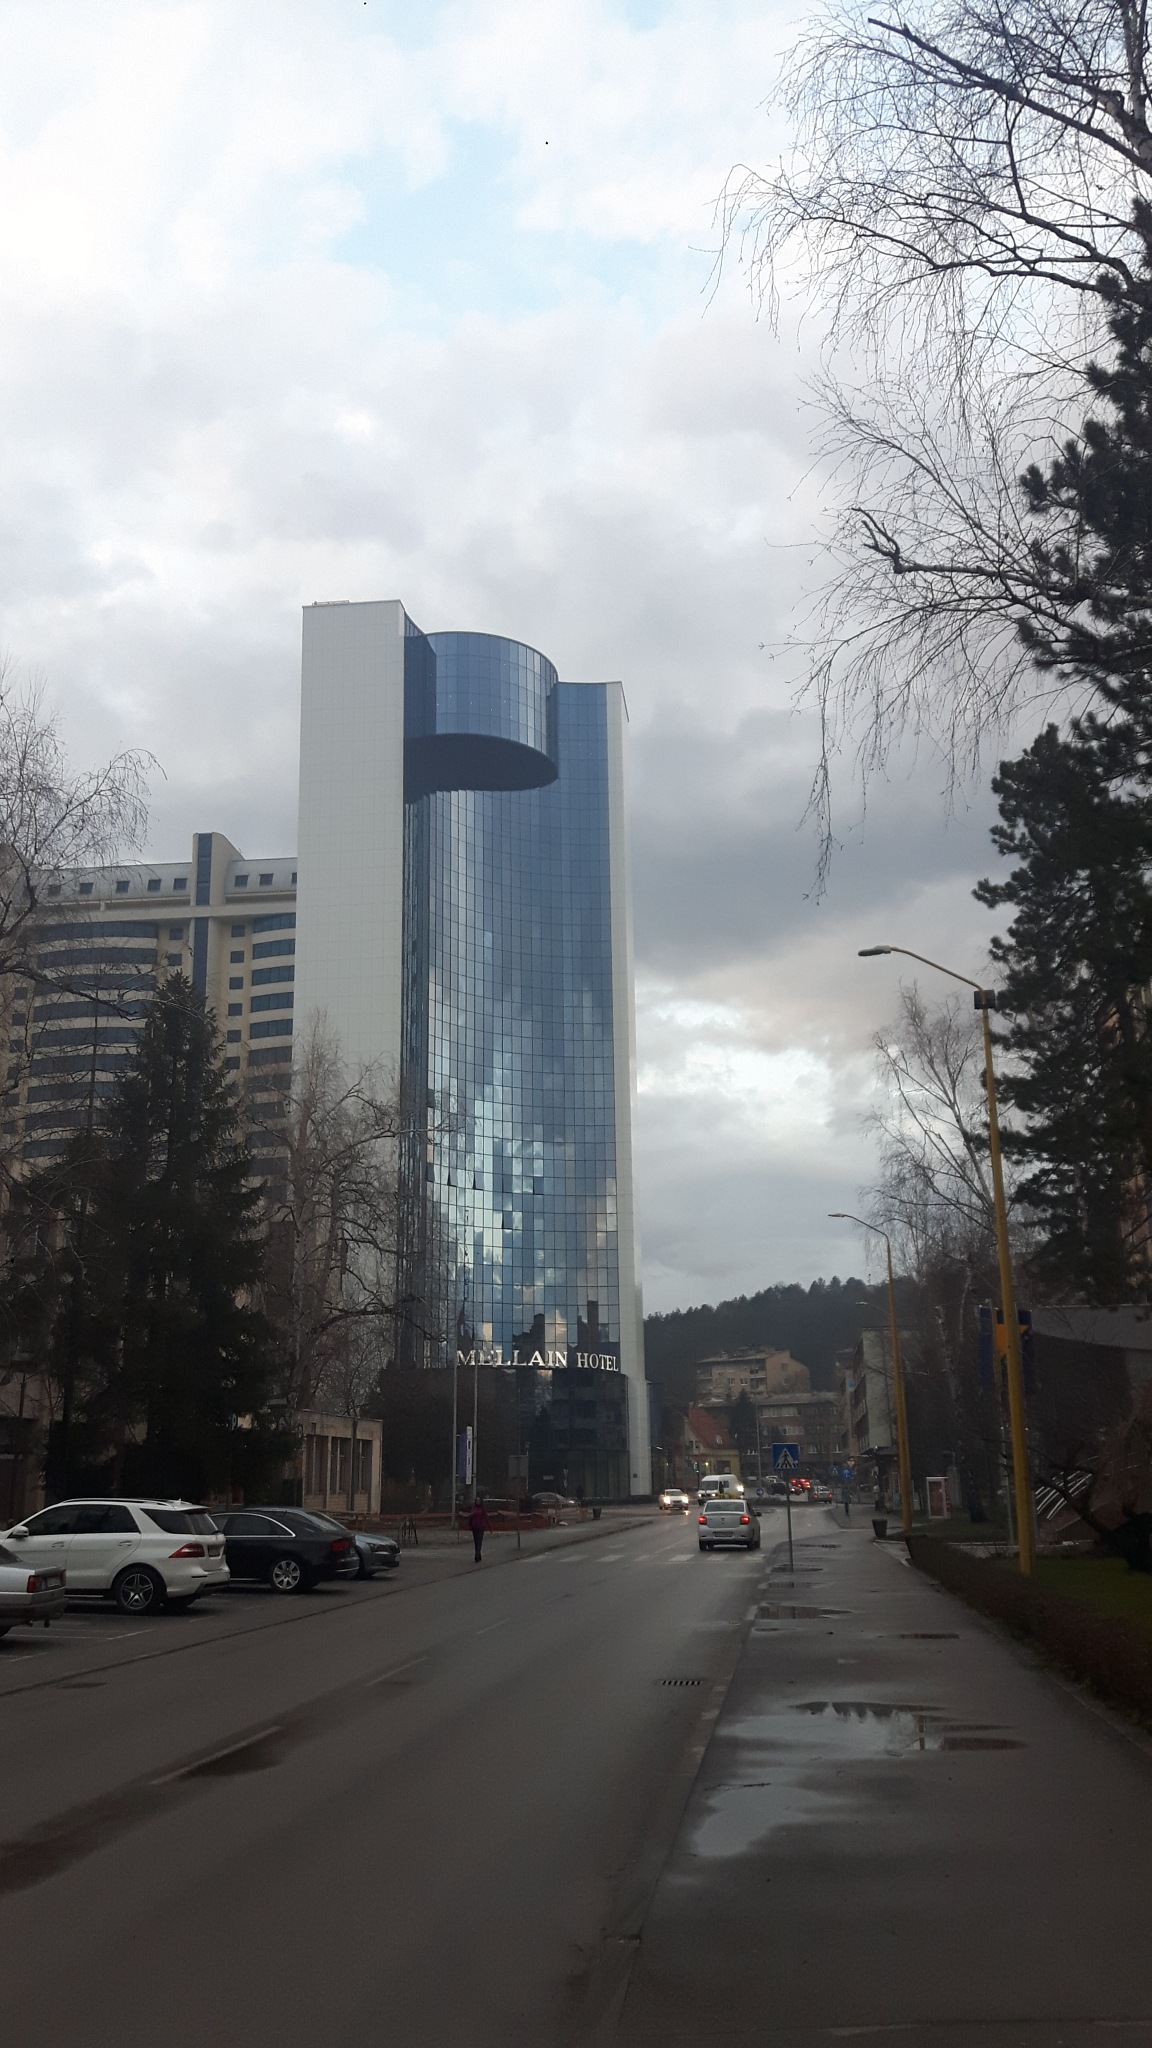 Cloudy weather and Mellain hotel by Mevludin_Hasanovic